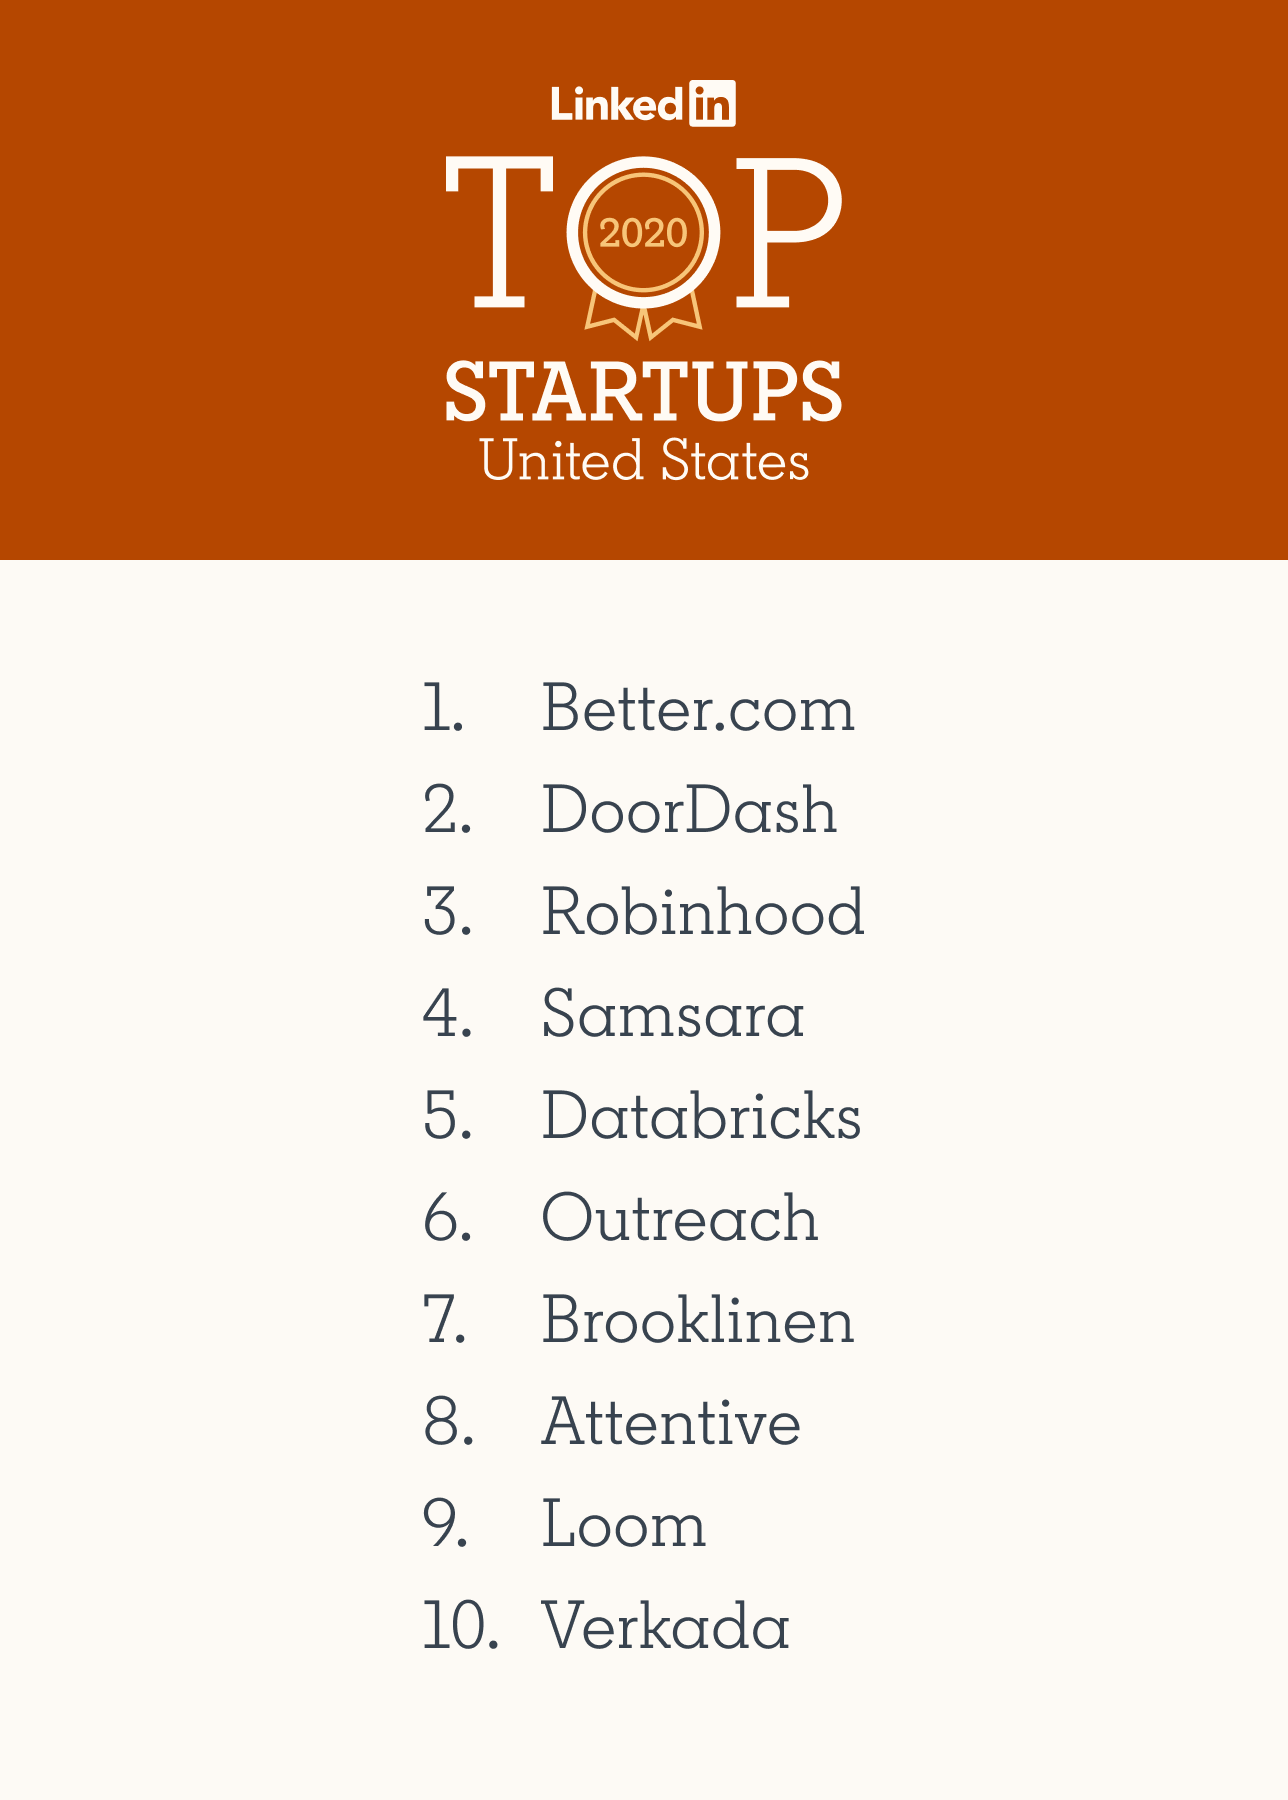 LinkedIn Top U.S. Startups of 2020: 1)Better.com 2)DoorDash 3)Robinhood 4)Samsara 5)Databricks 6)Outreach 7)Brooklinen 8)Attentive 9)Loom 10)Verkada